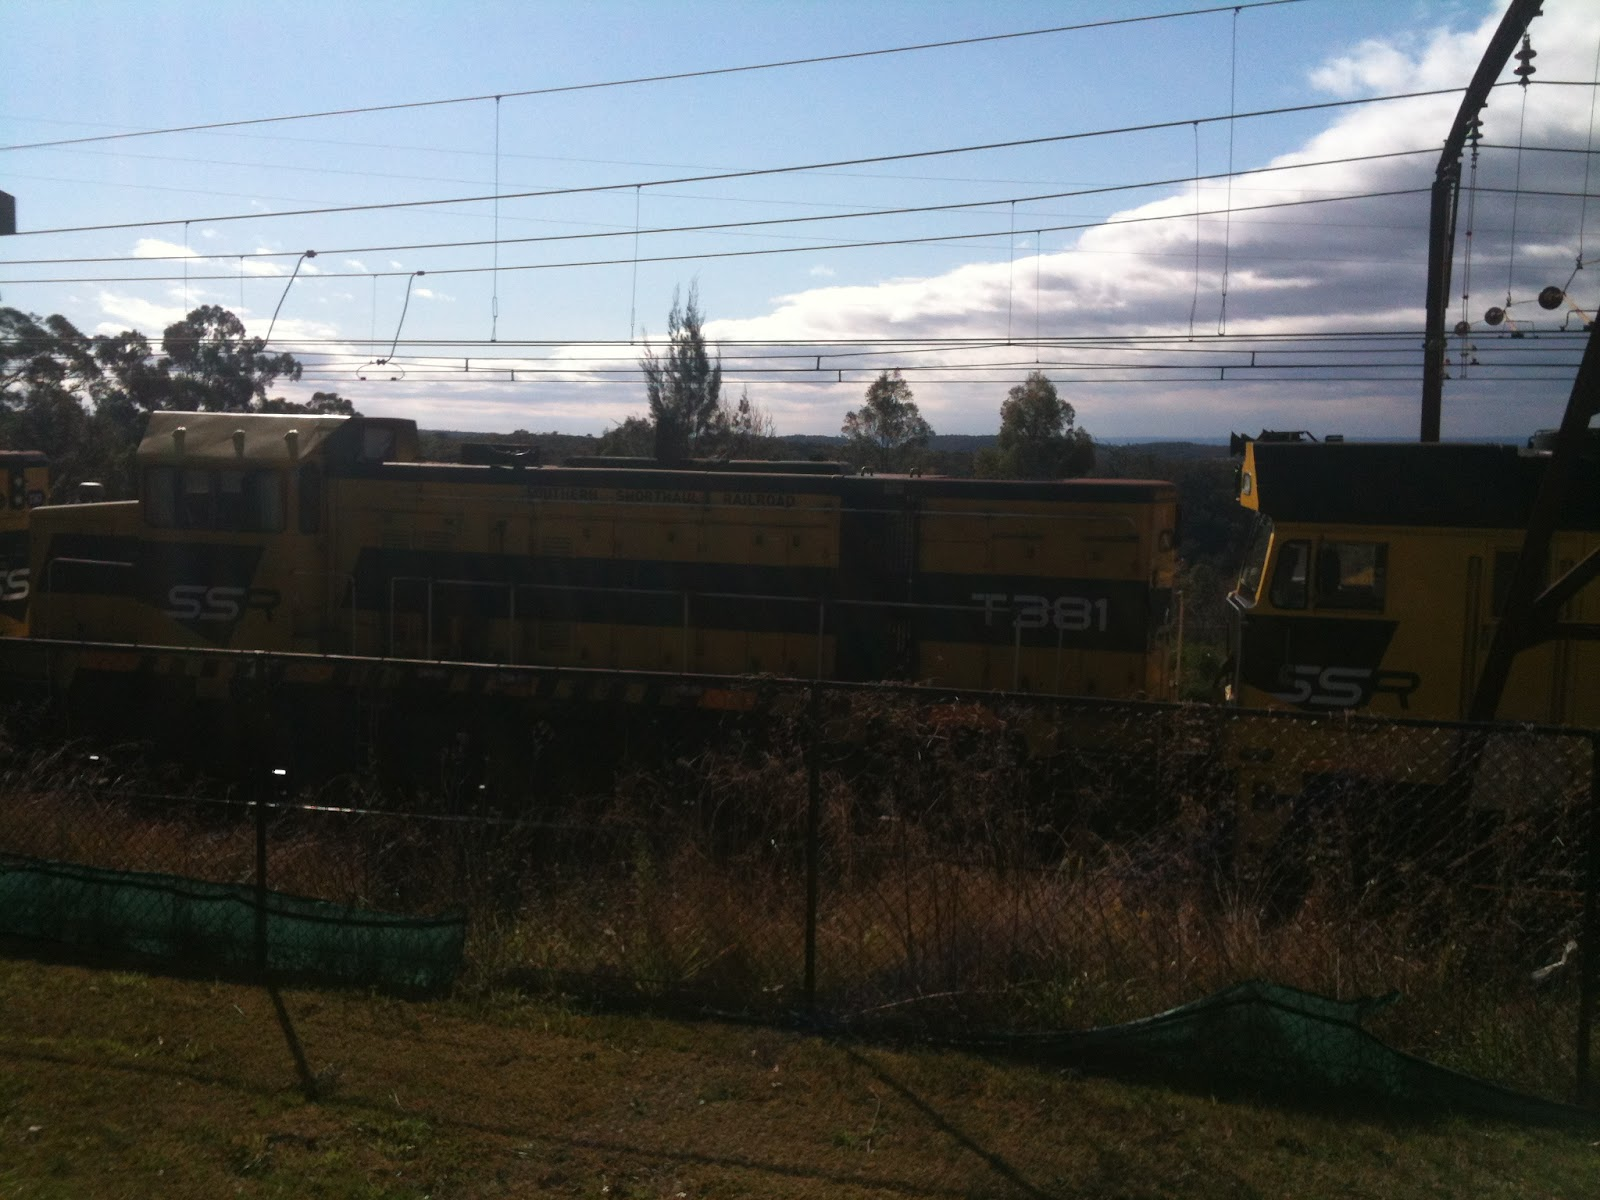 NSW RADIO AND COMMUNICATIONS - by Michael Bailey: August 2012